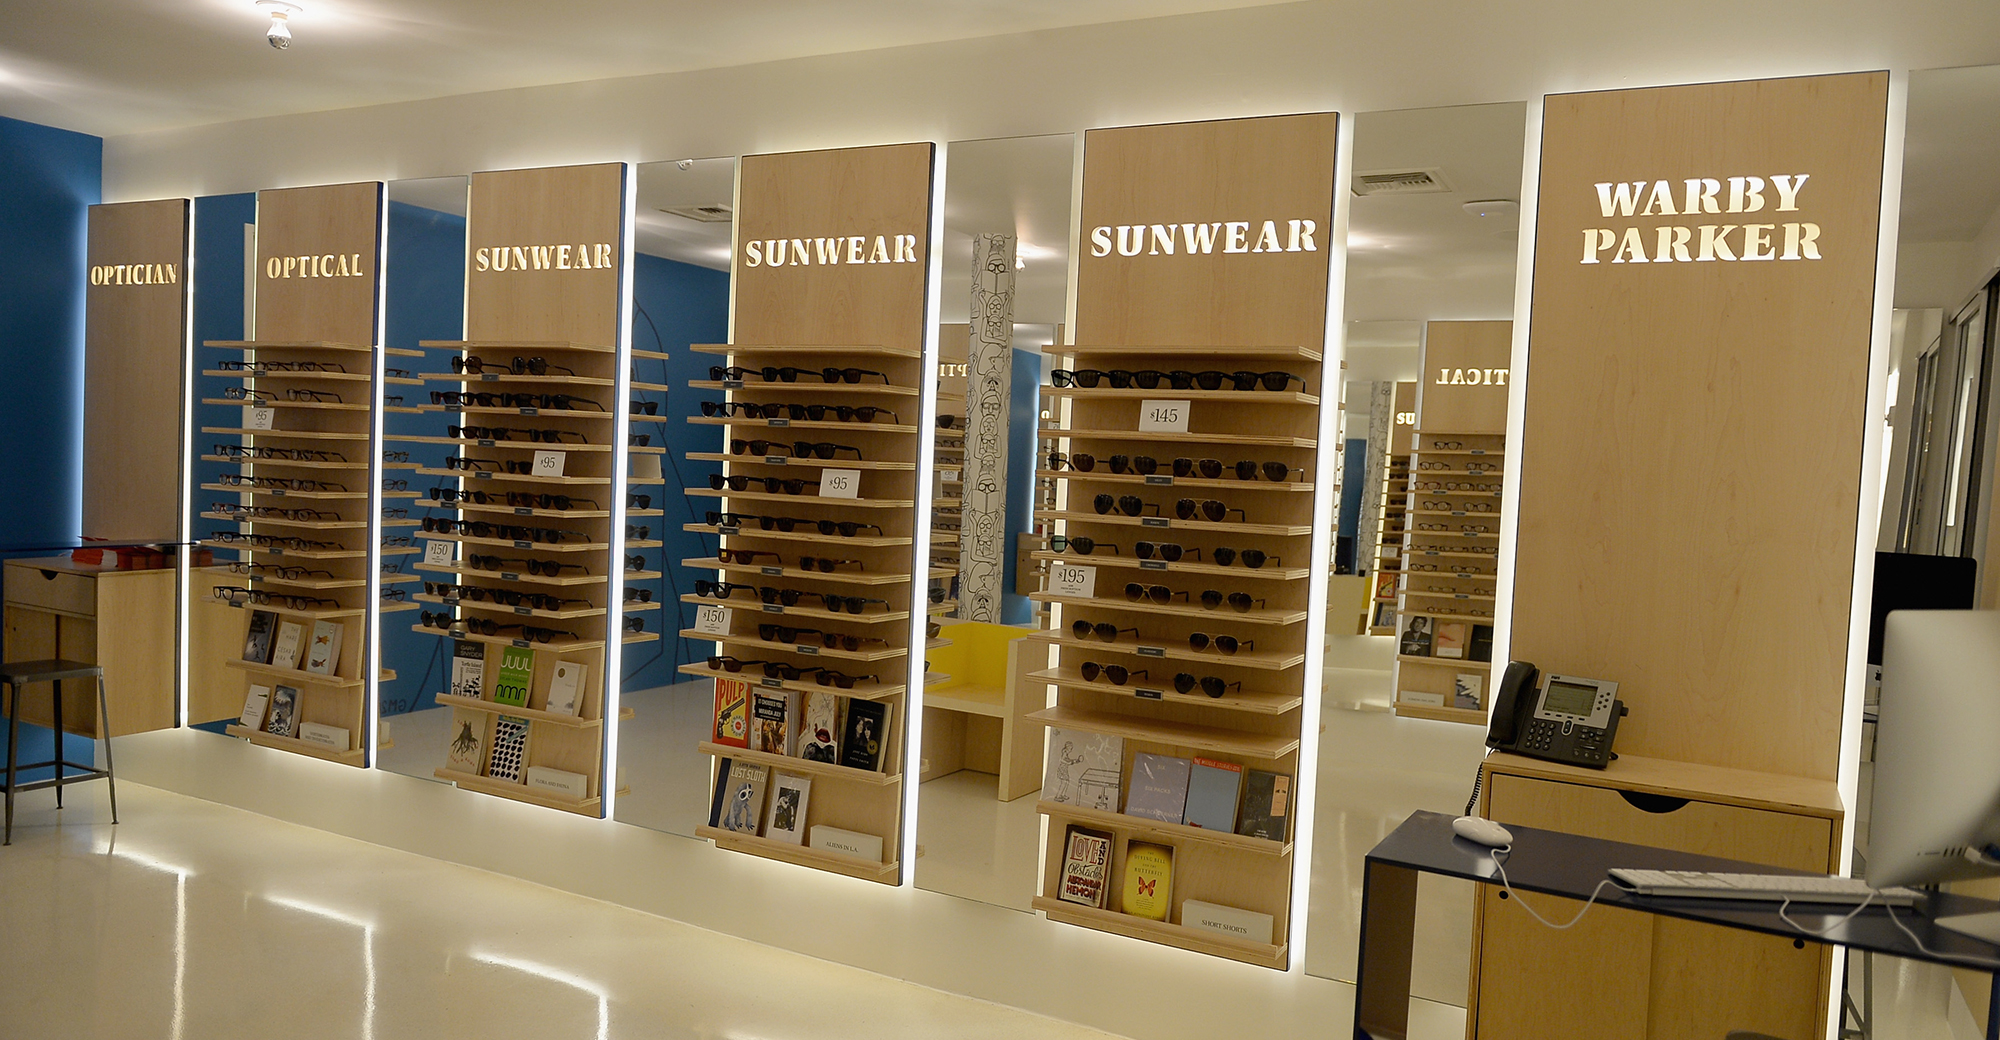 2b84b6a1cb Warby Parker is opening stores in suburban malls.